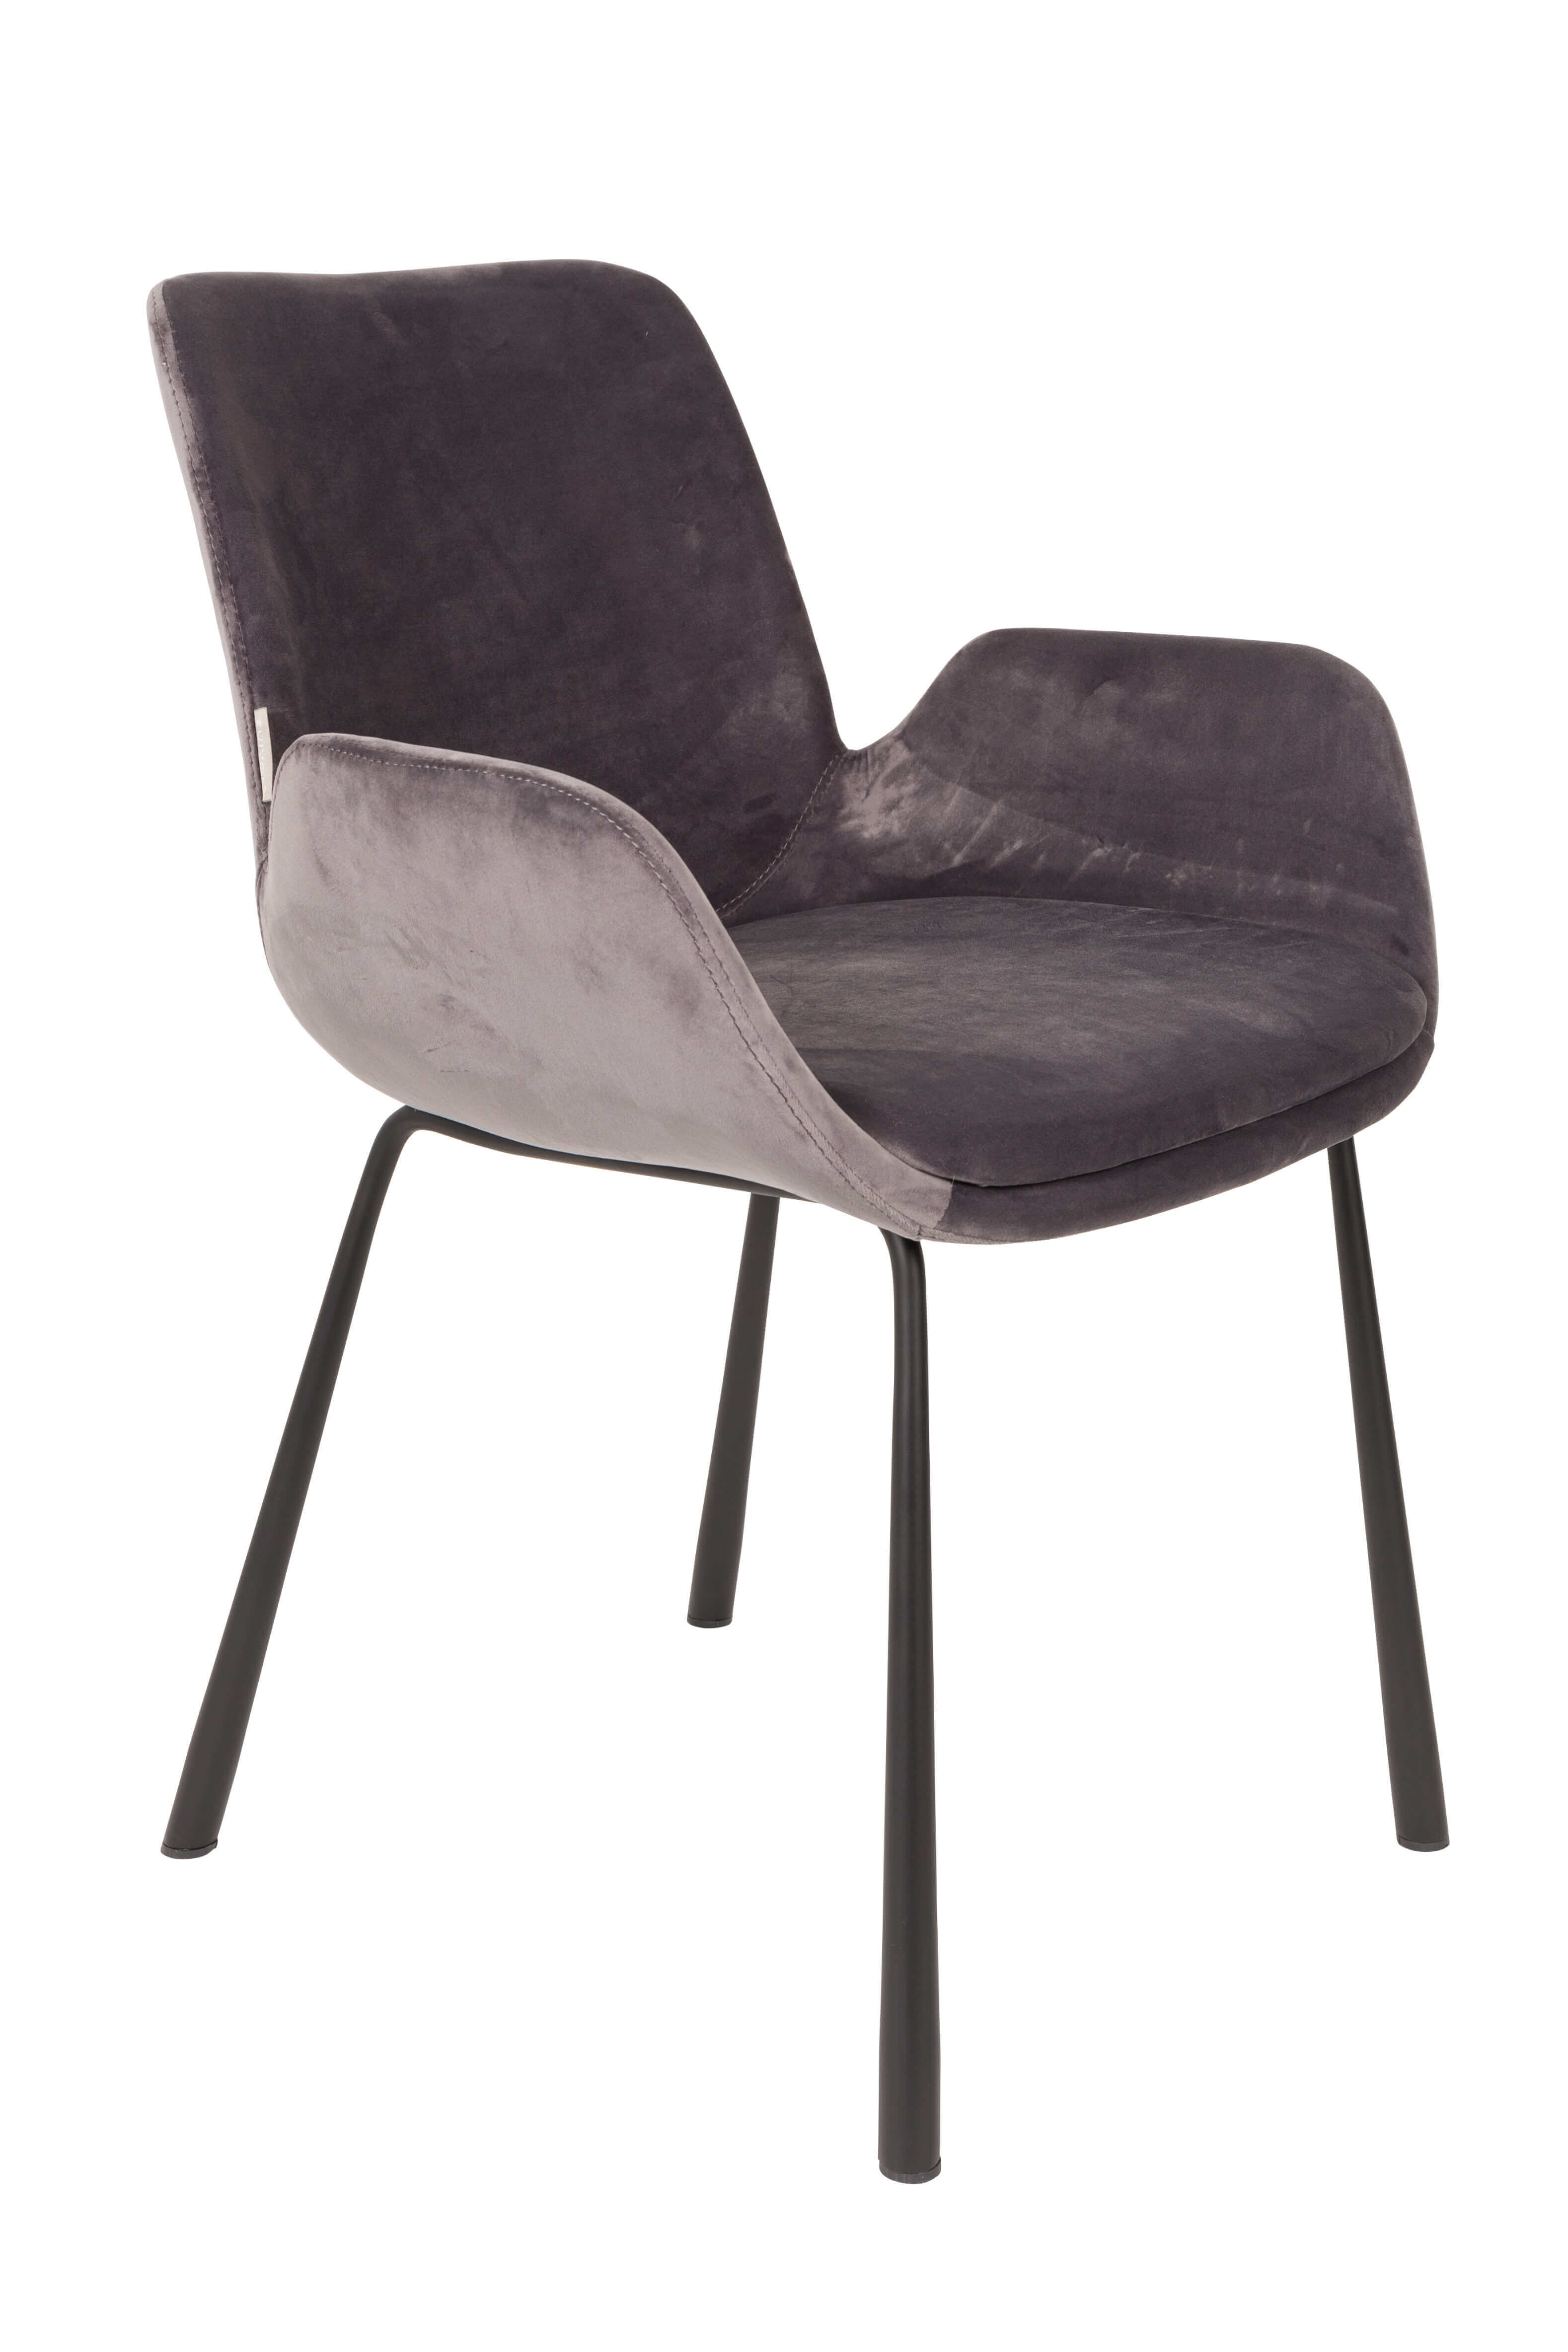 Velvet Dining Chair By Zuiver